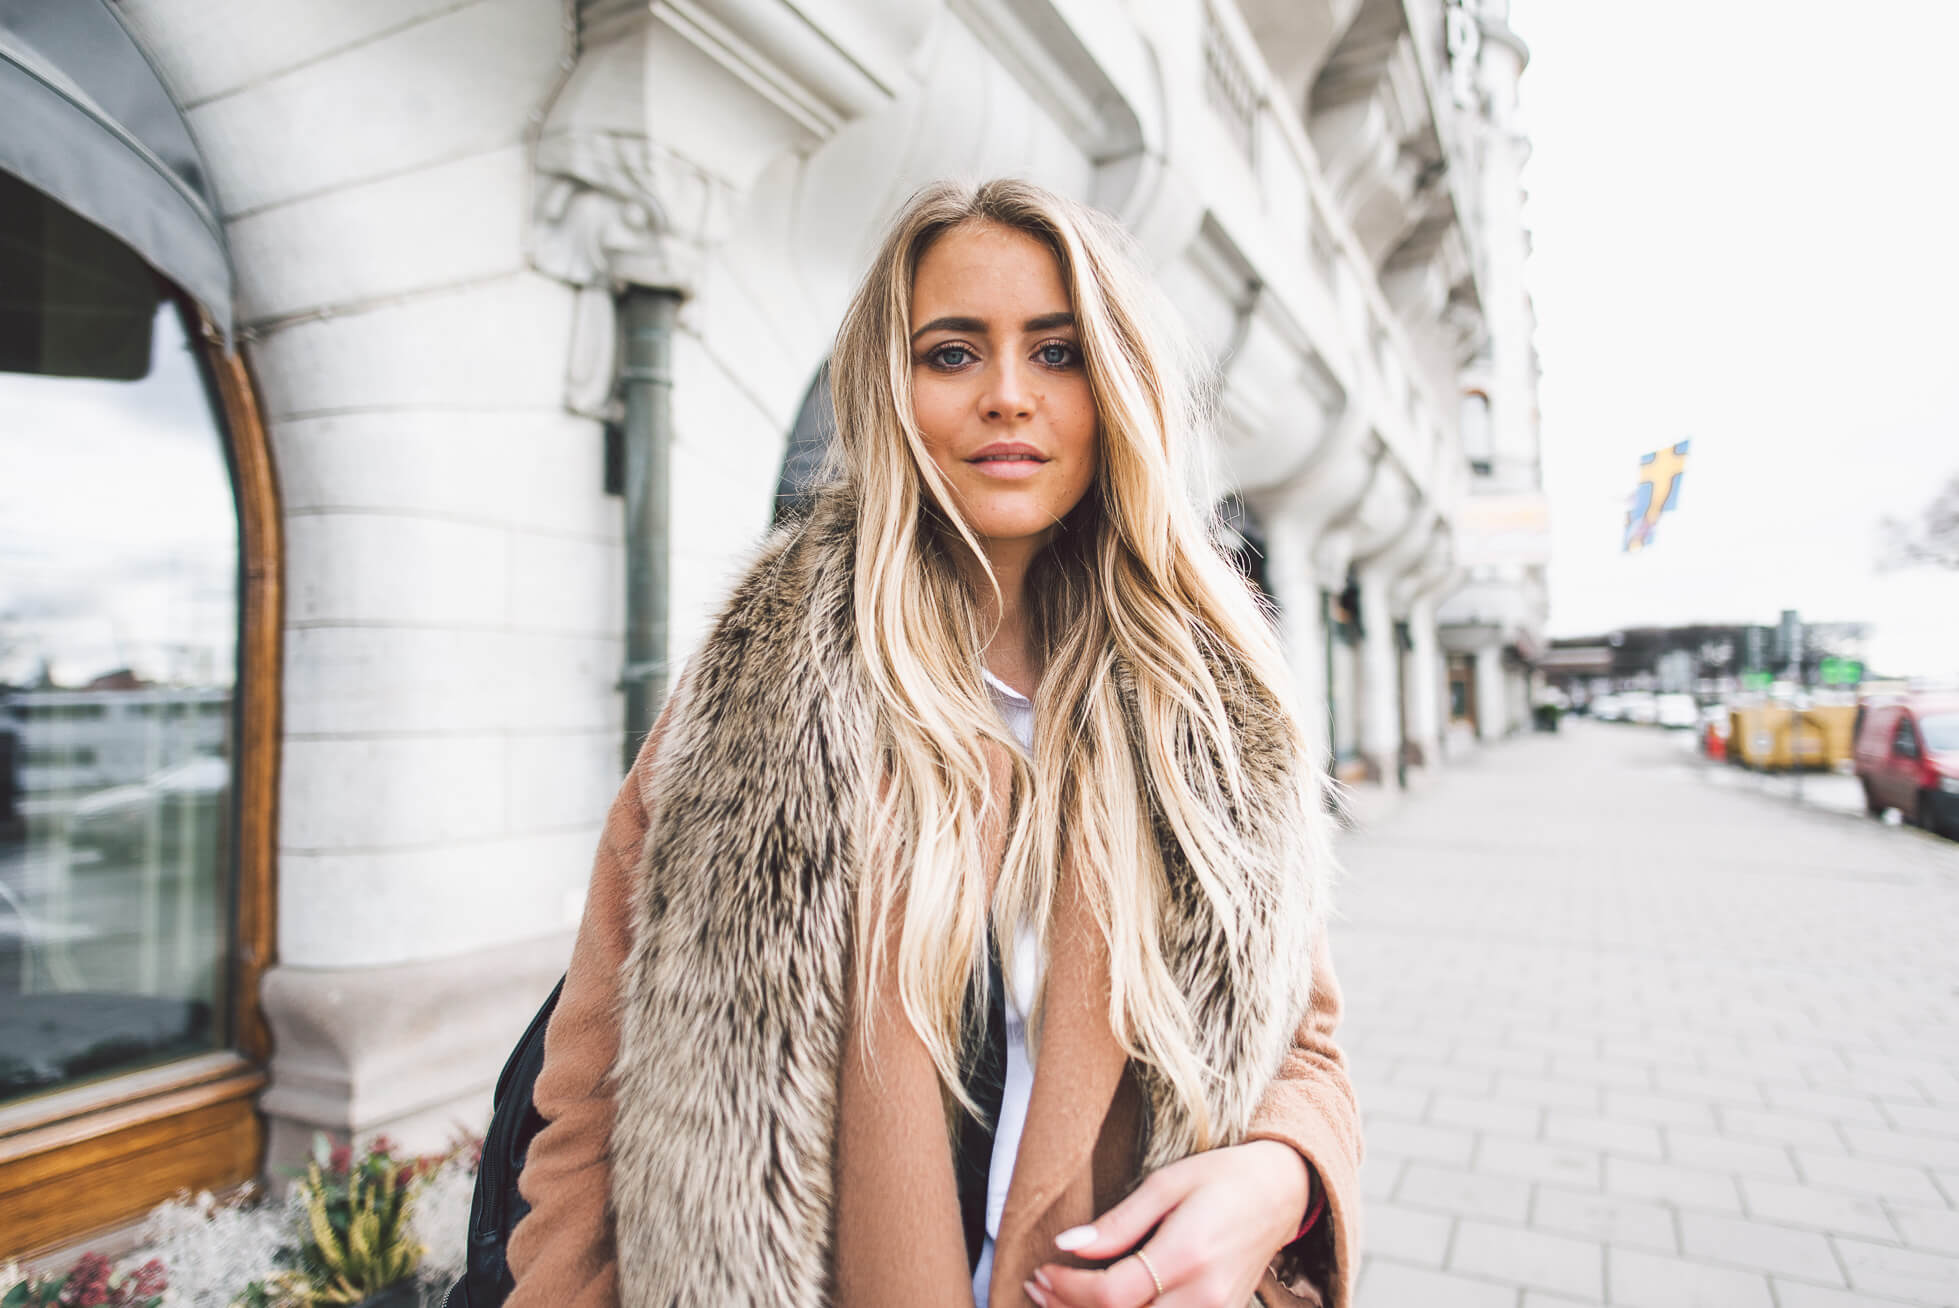 janni-deler-city-vibes-outfitDSC_8652